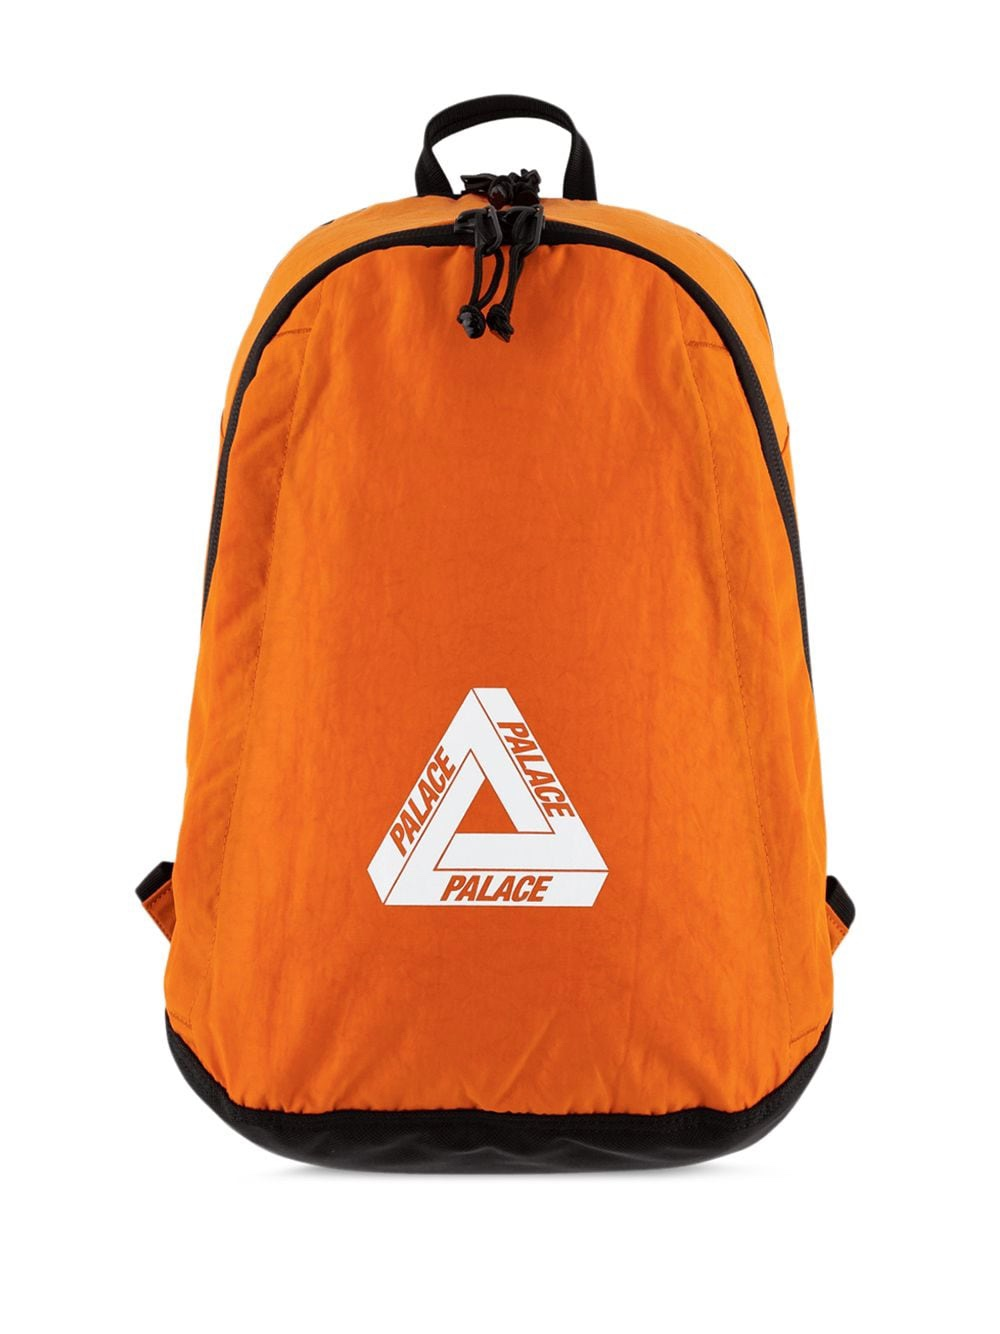 Palace Backpack orange